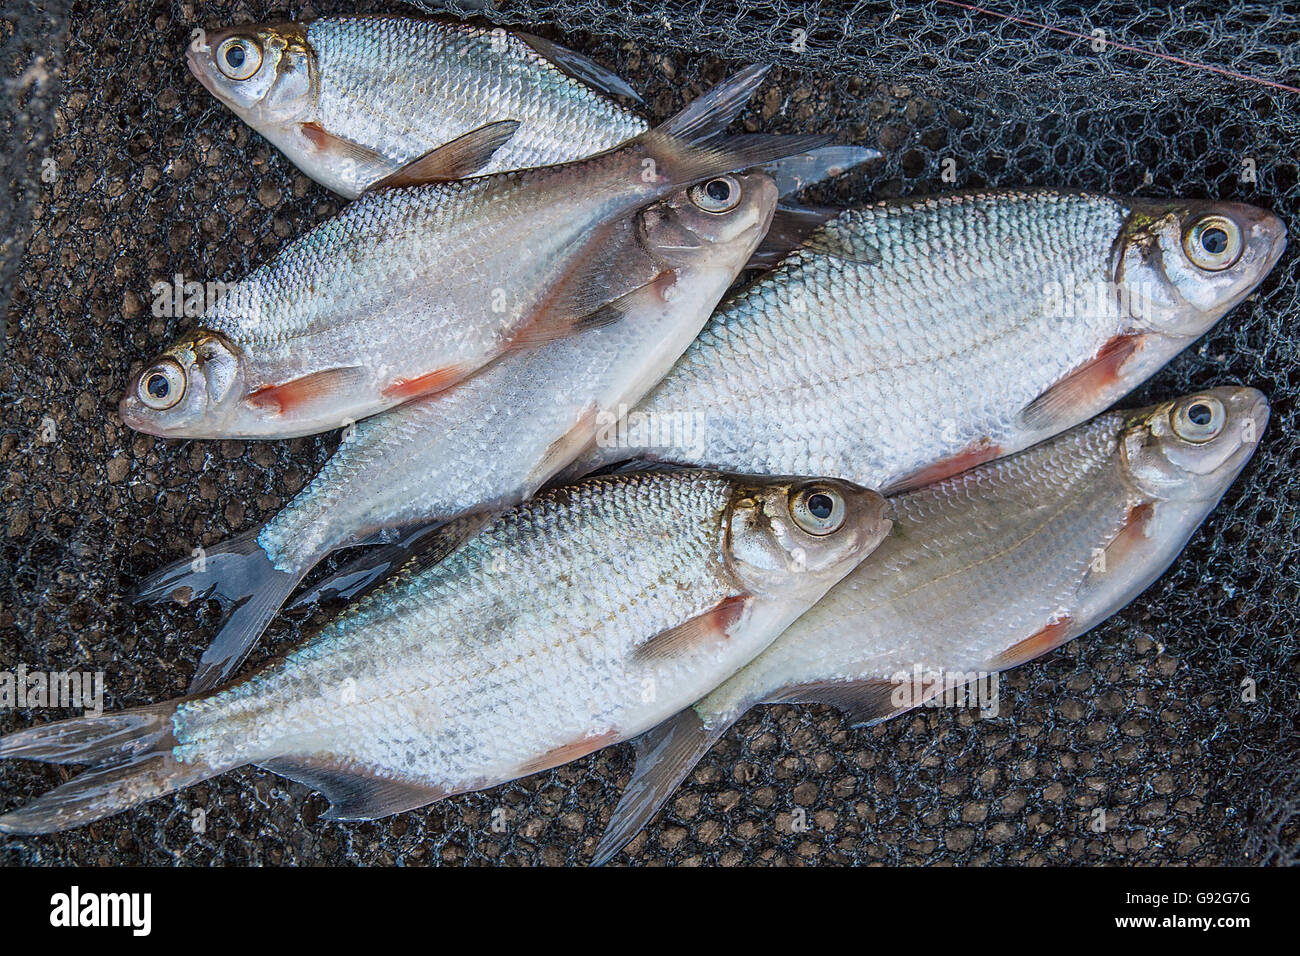 Freshwater fish bream - Freshwater Fish Just Taken From The Water Several Bream And Silver Bream Or White Bream On Black Fishing Net